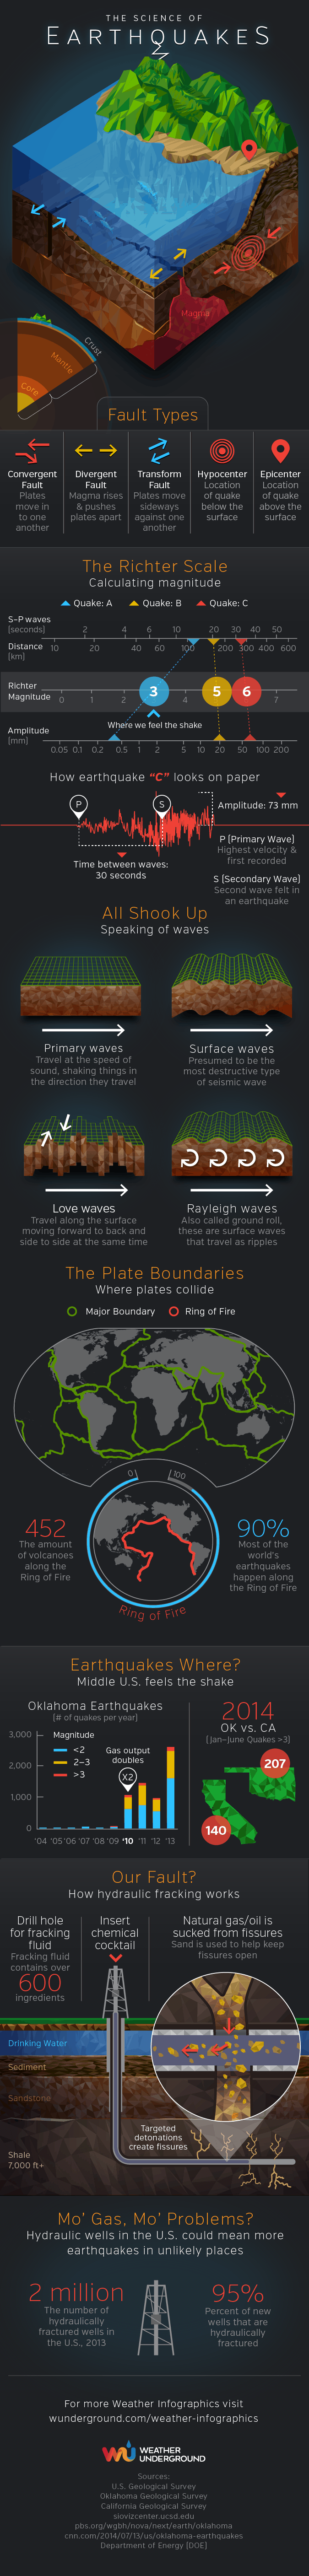 Science of Earthquakes Infographic